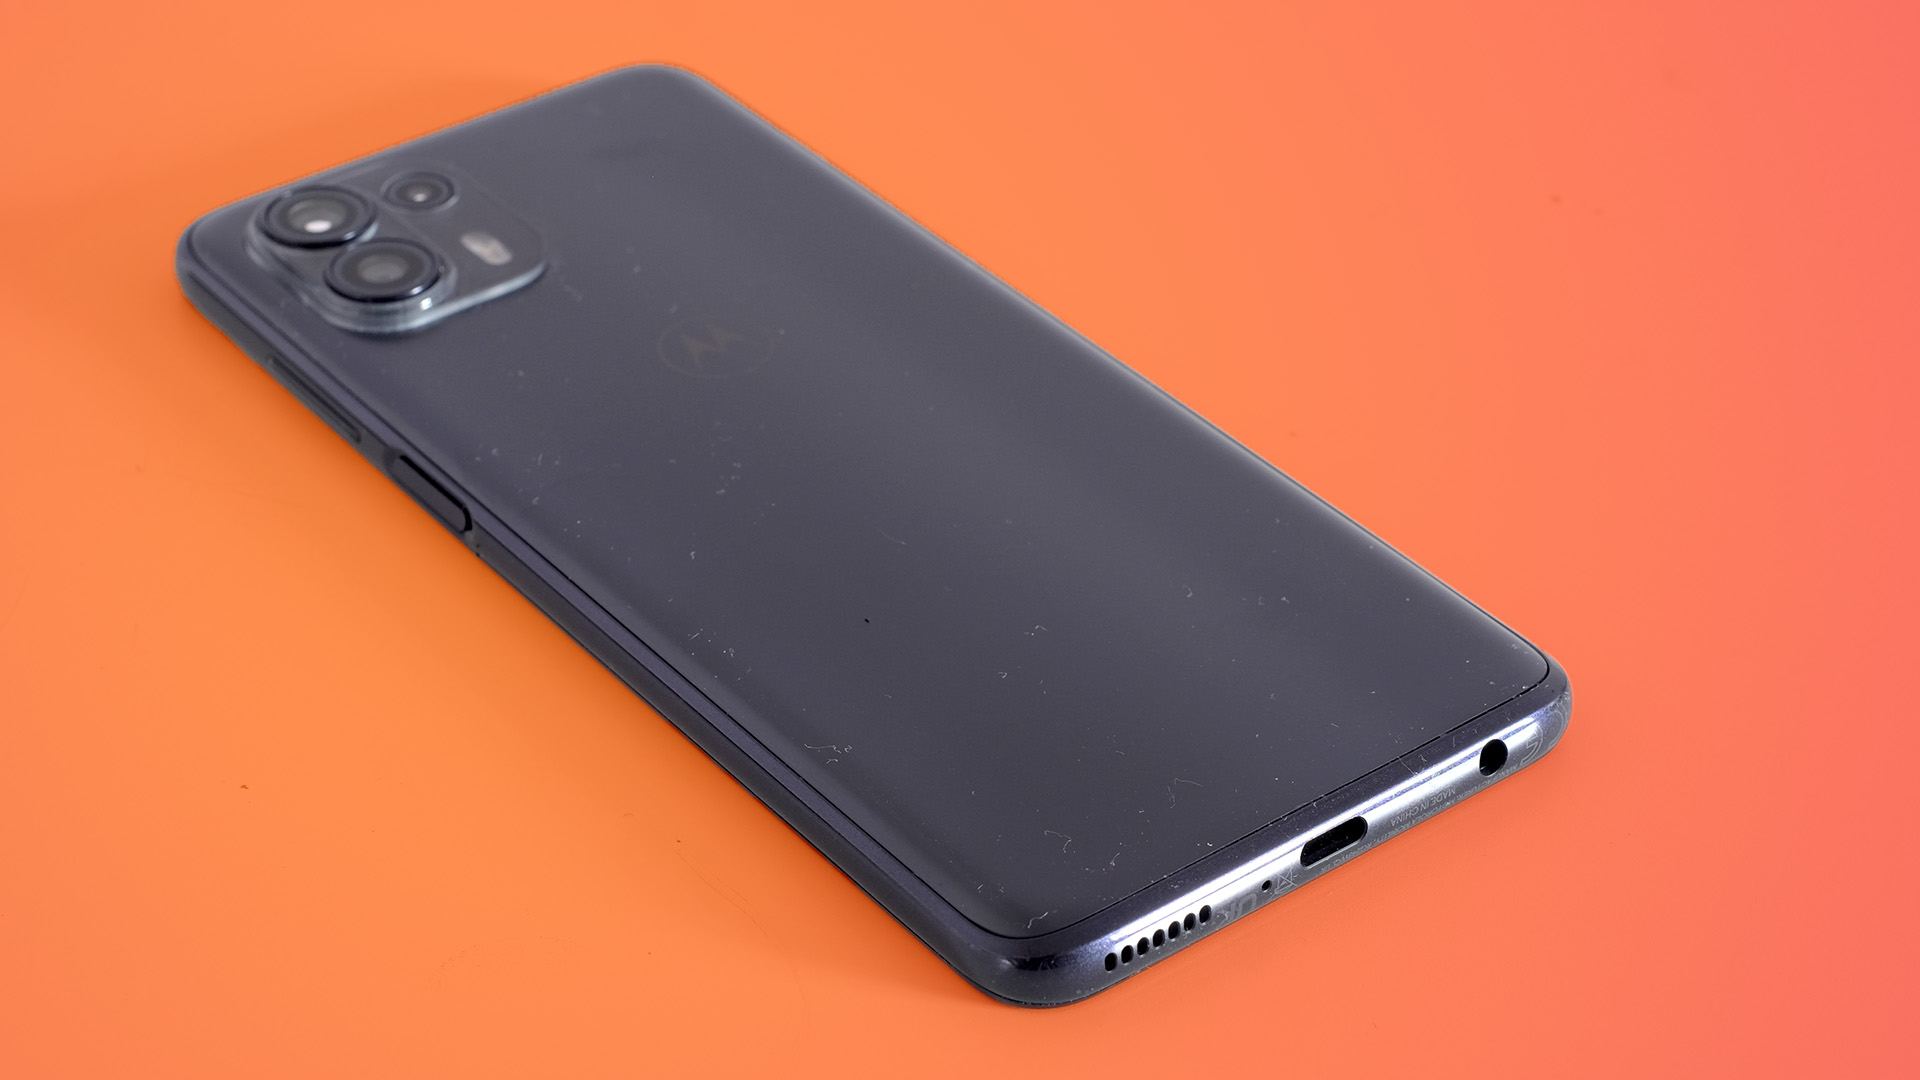 A Motorola Edge 20 Lite from the back on an orange background